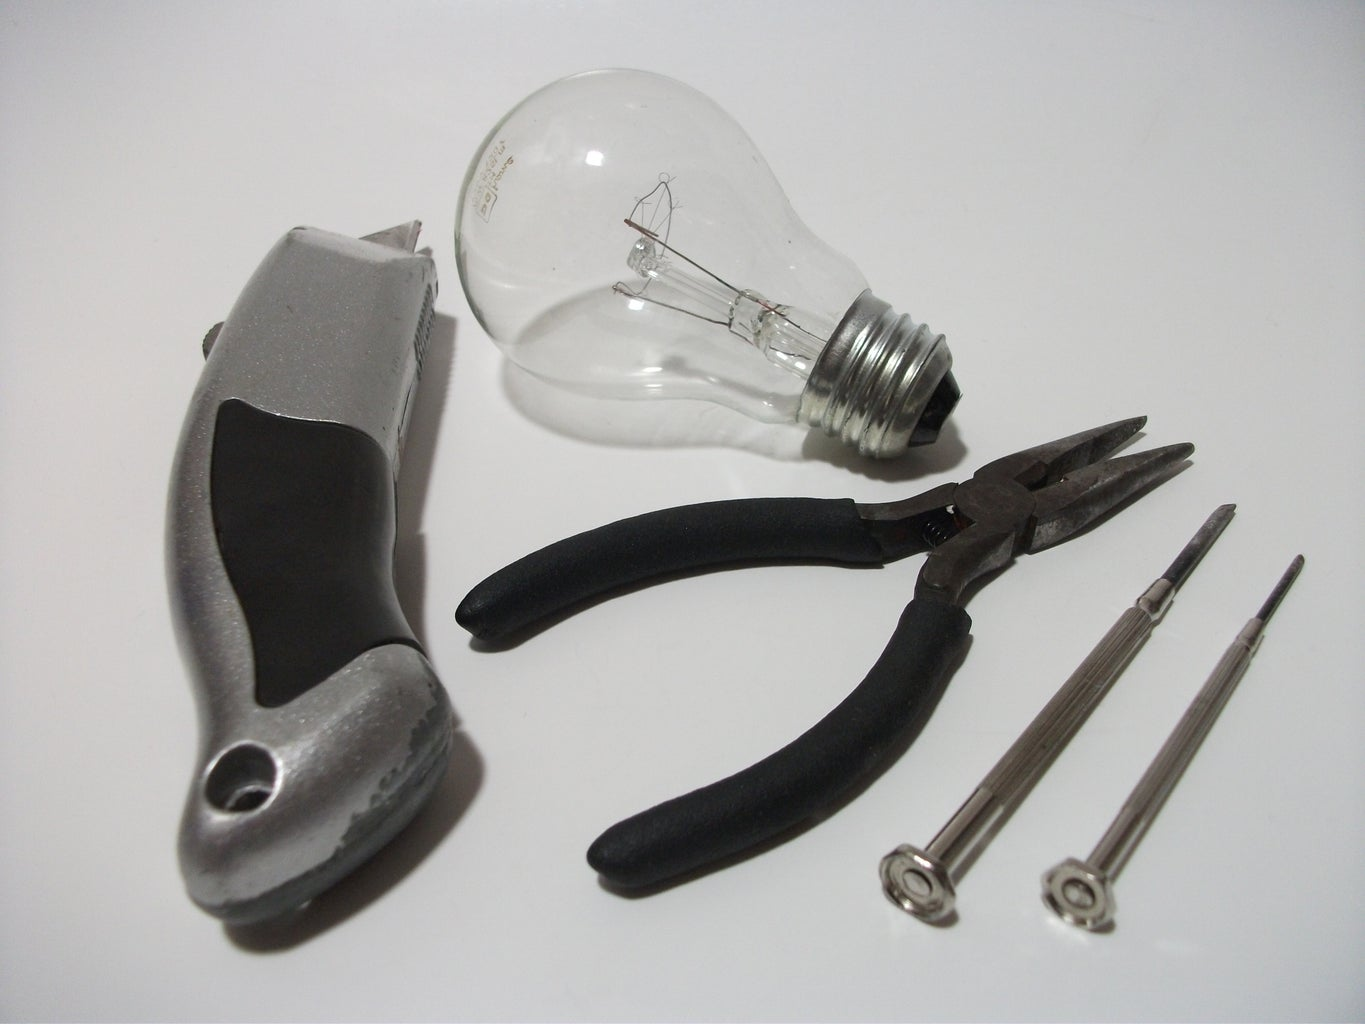 Hollowing Out a Lightbulb...